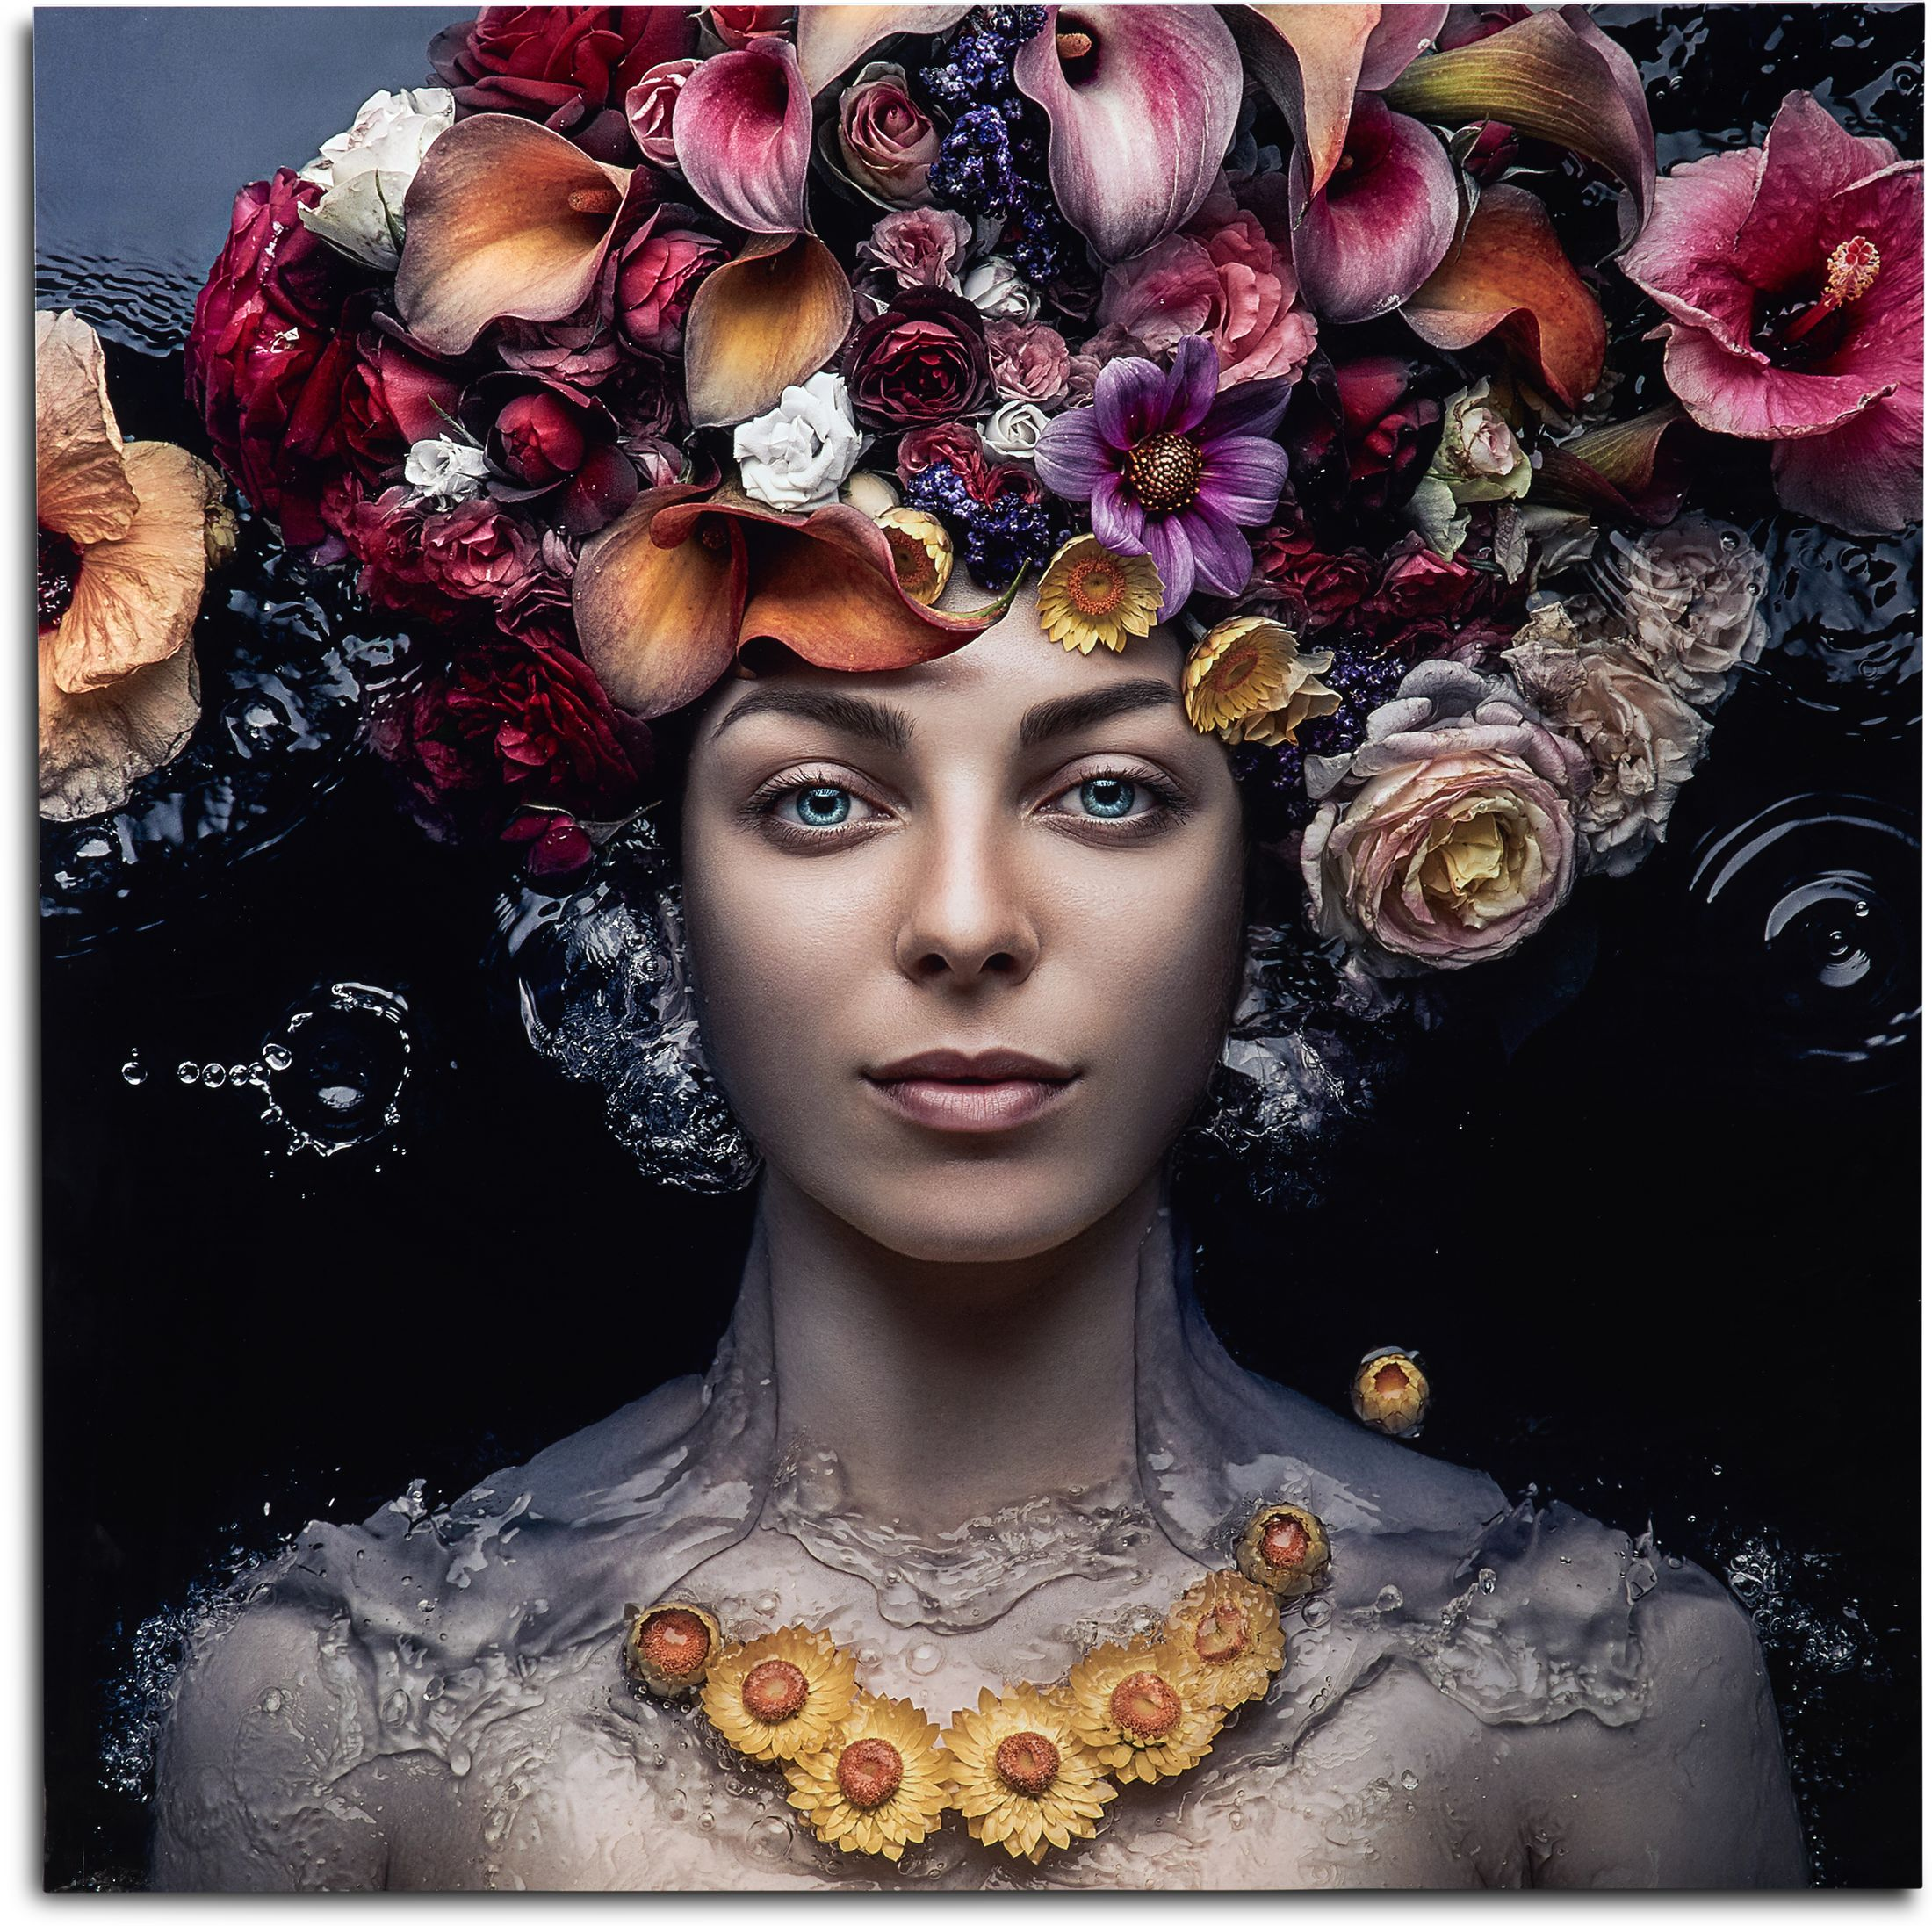 Home Accessories - Flowers in Hair Wall Art